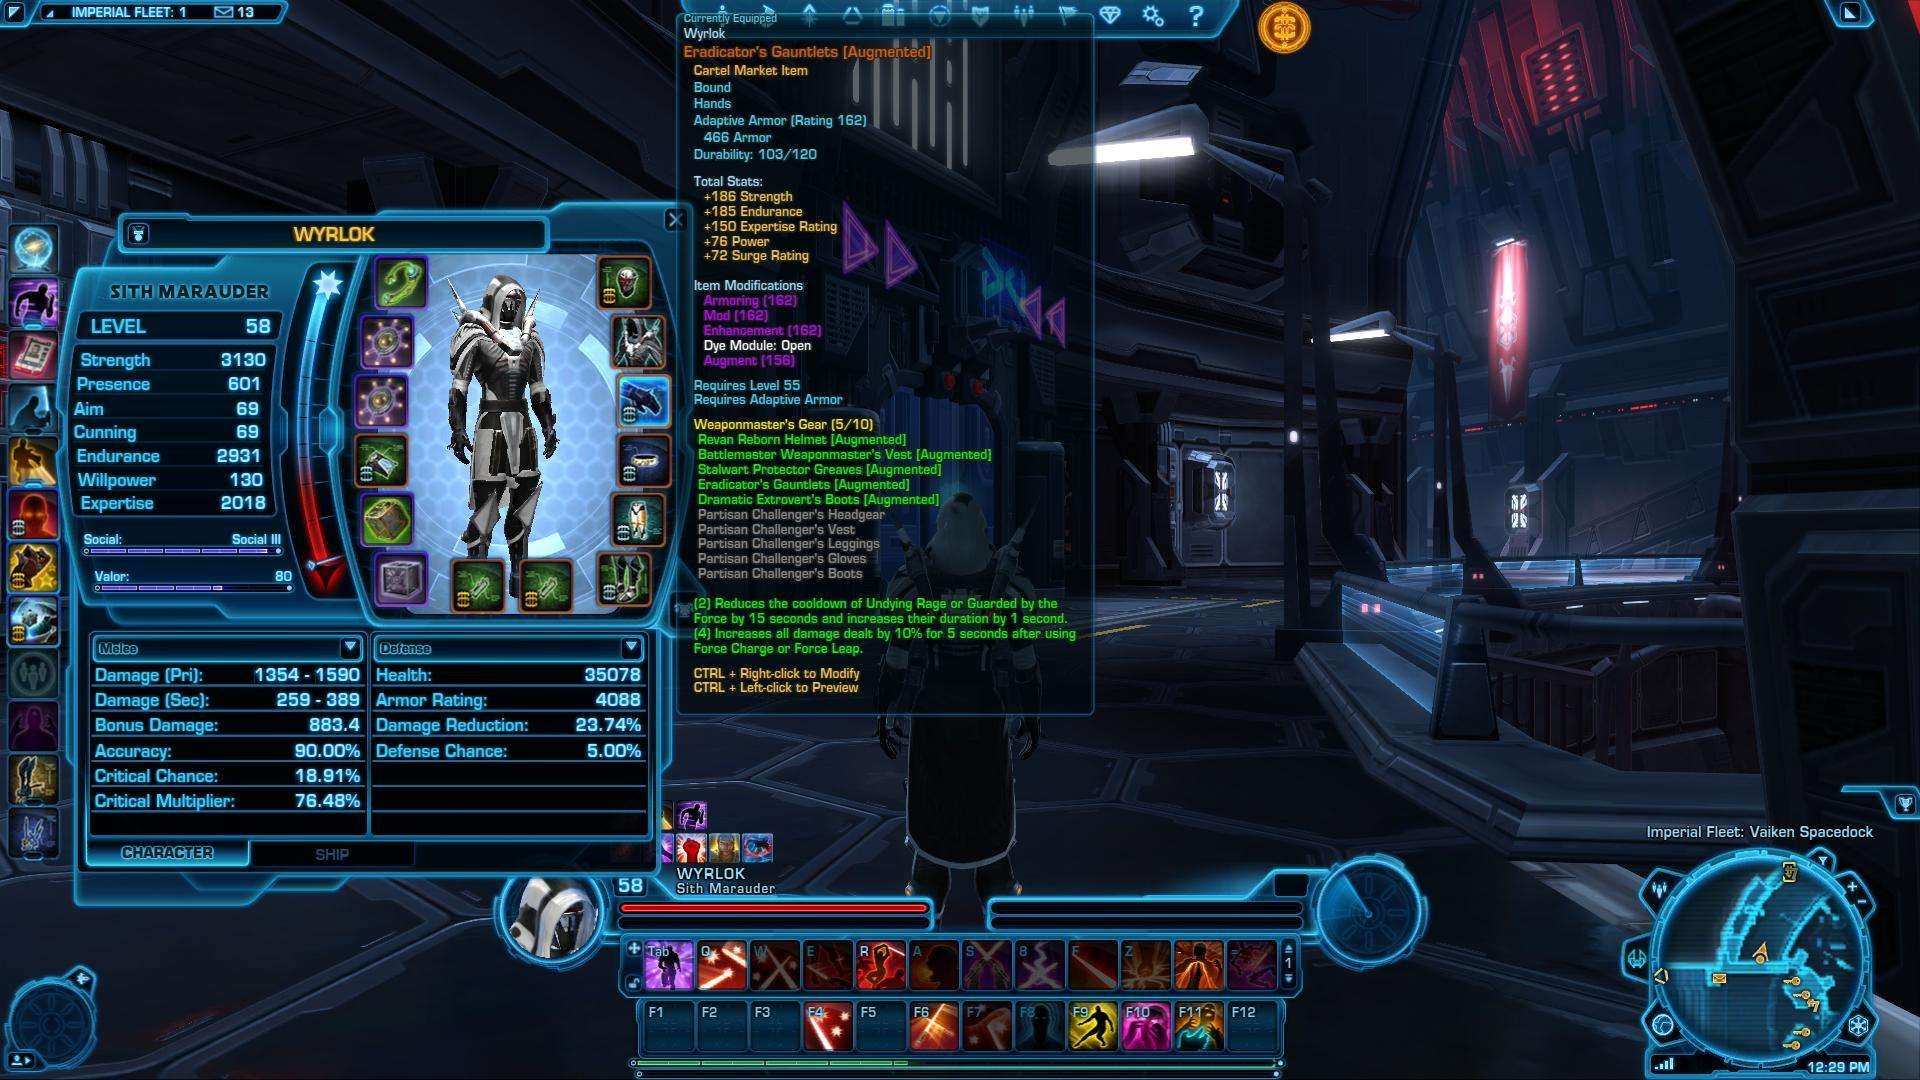 Cleaned My Room! Swtor_20